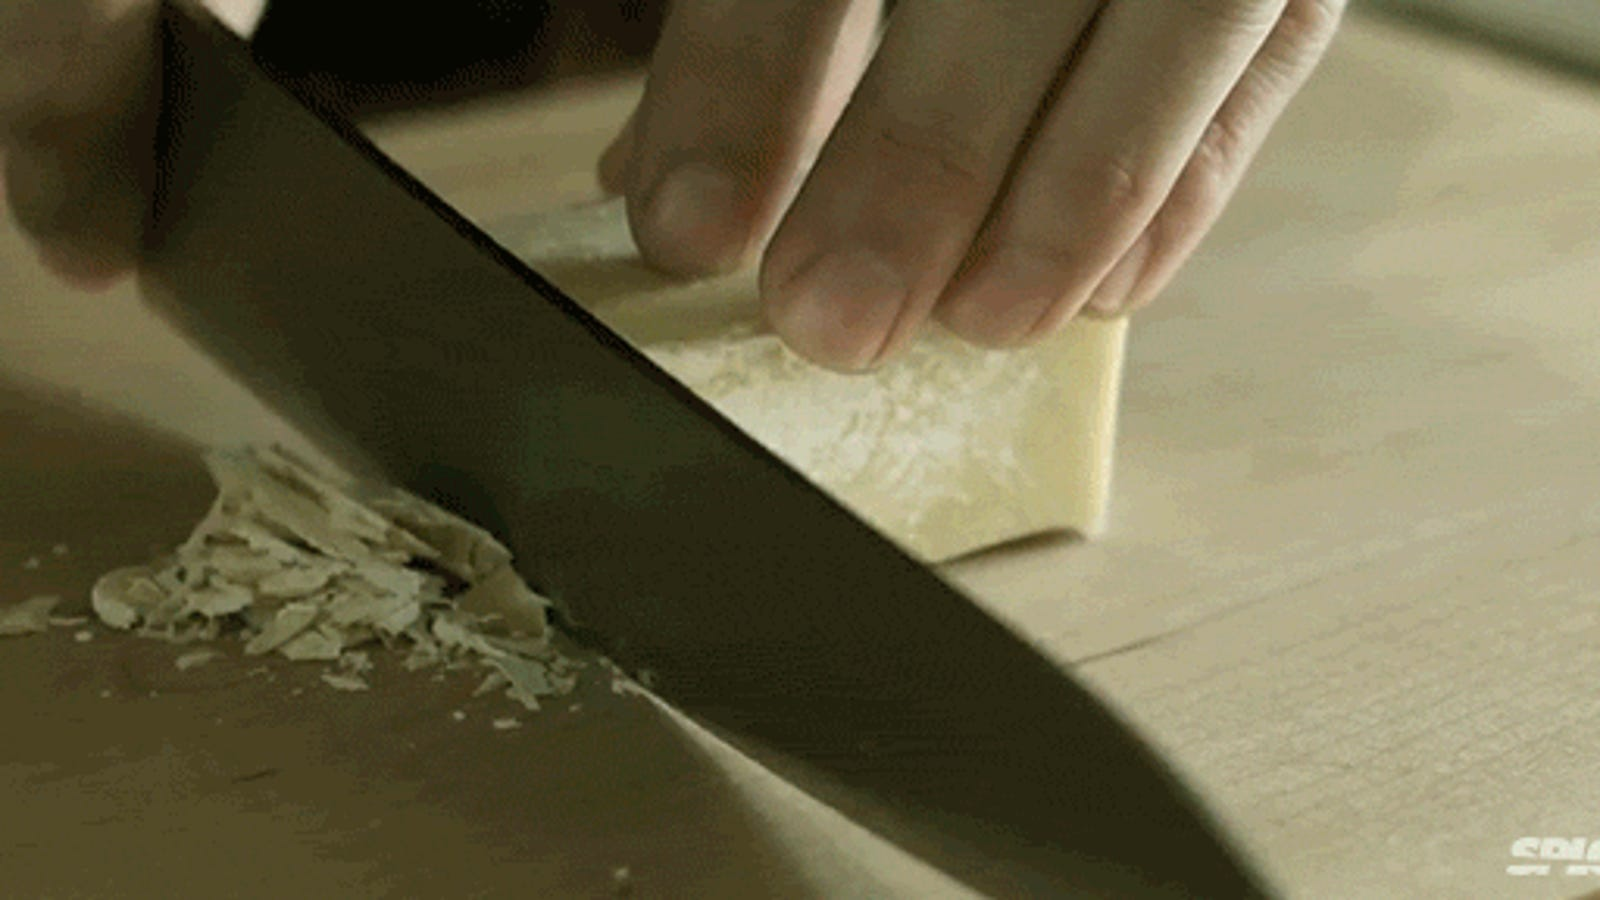 Watching this video of a chef cooking massaged my senses with pleasure